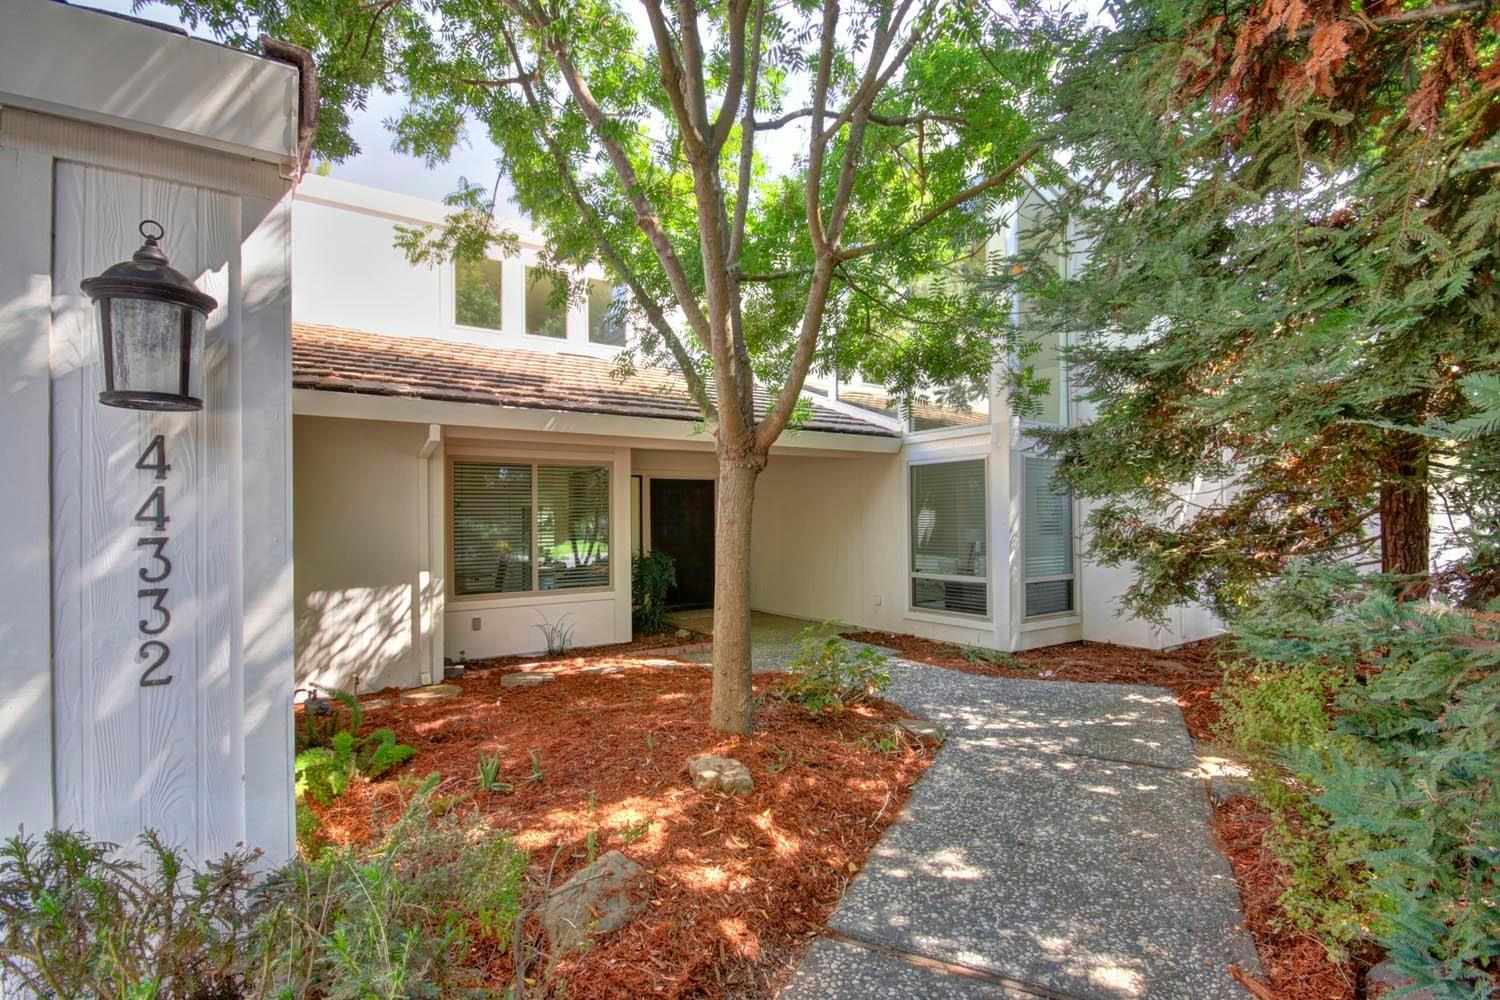 $985,000 - 4Br/3Ba -  for Sale in El Macero Cc, El Macero